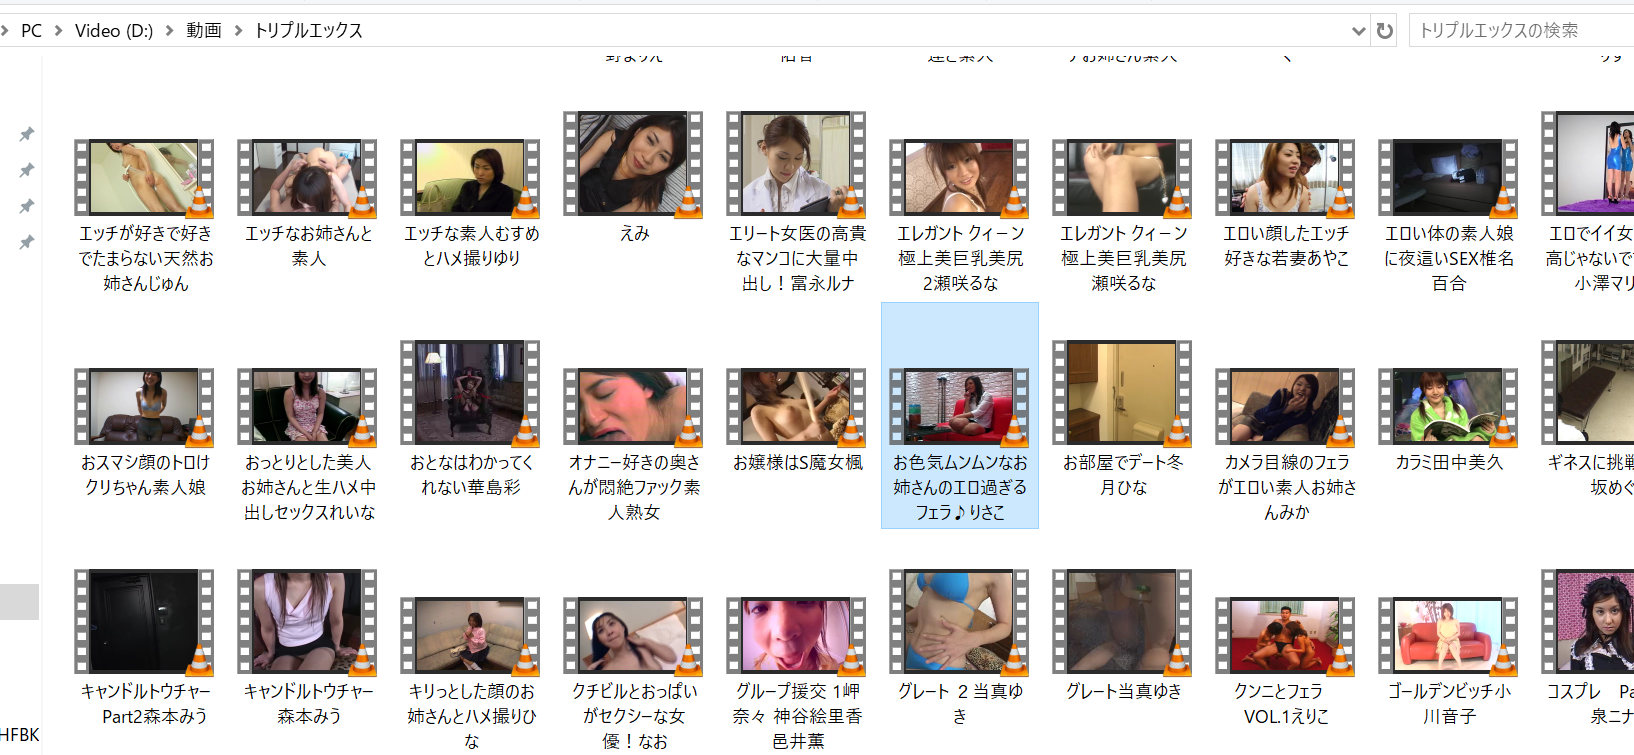 some of the uncensored JAV porn videos I downloaded when I was a member of XXX